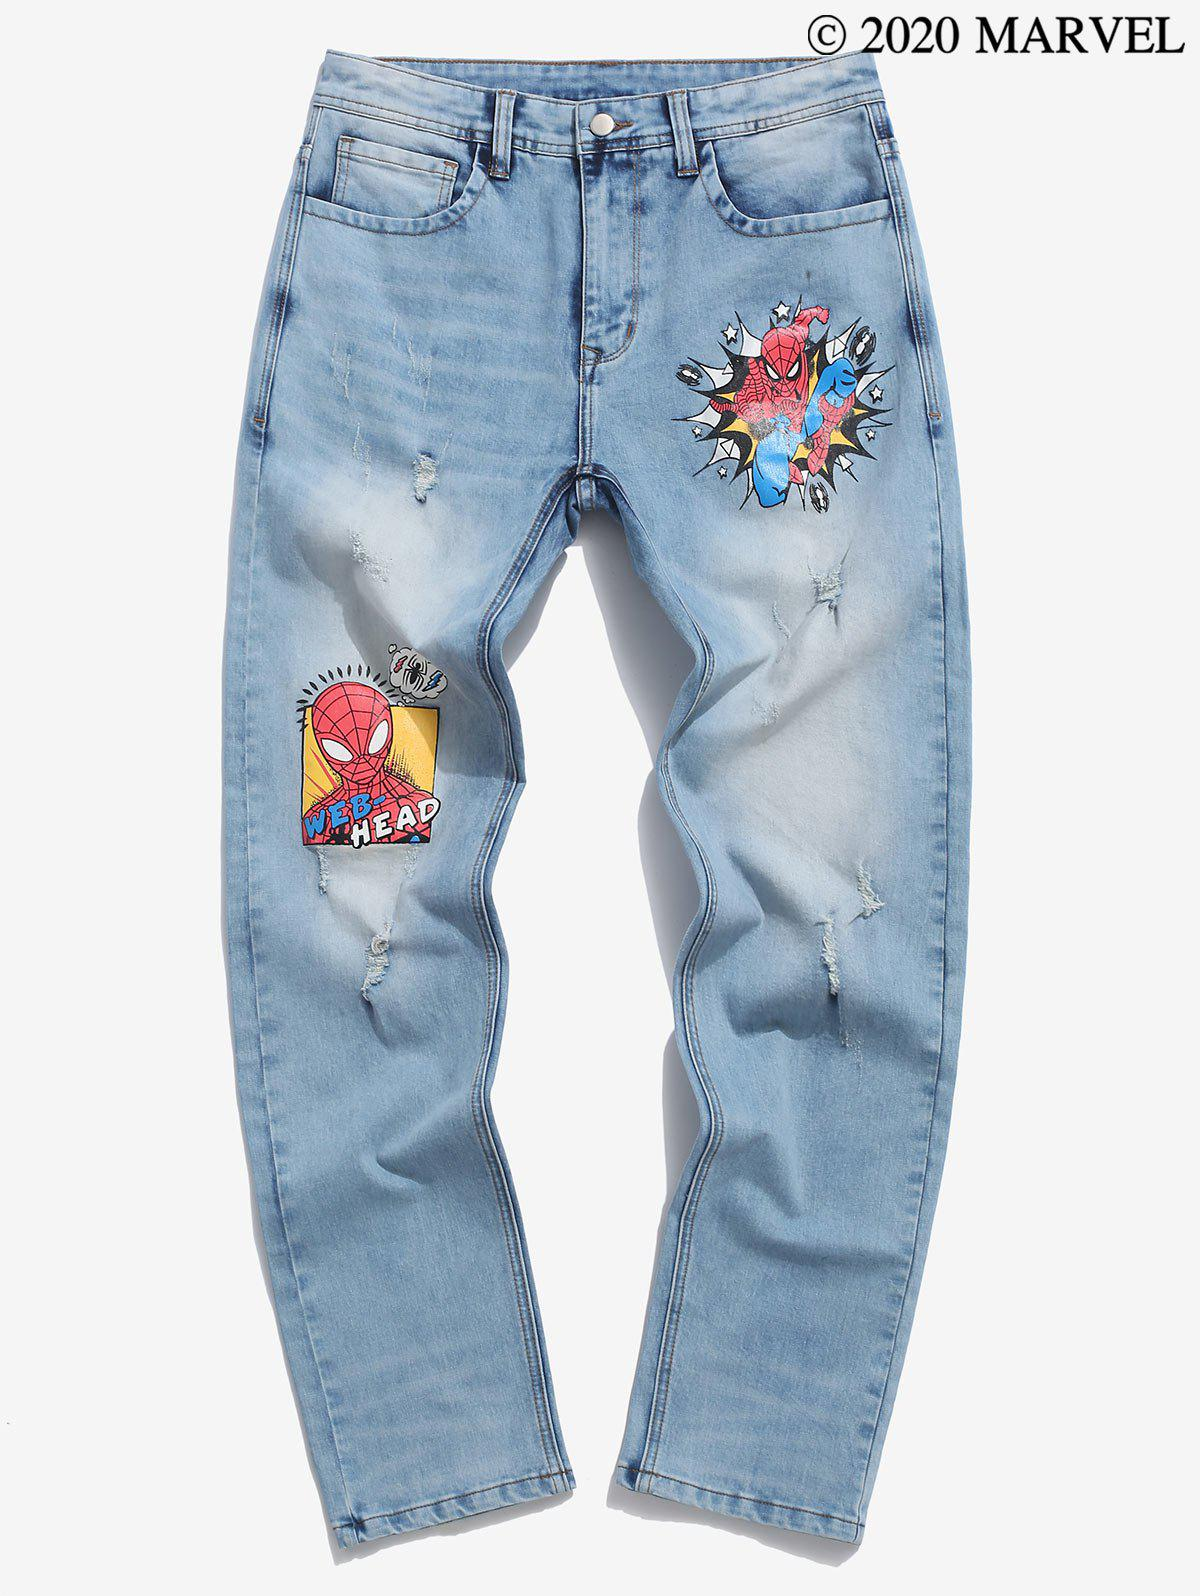 Marvel Spider-Man Web-Head Print Jeans - BLUE L